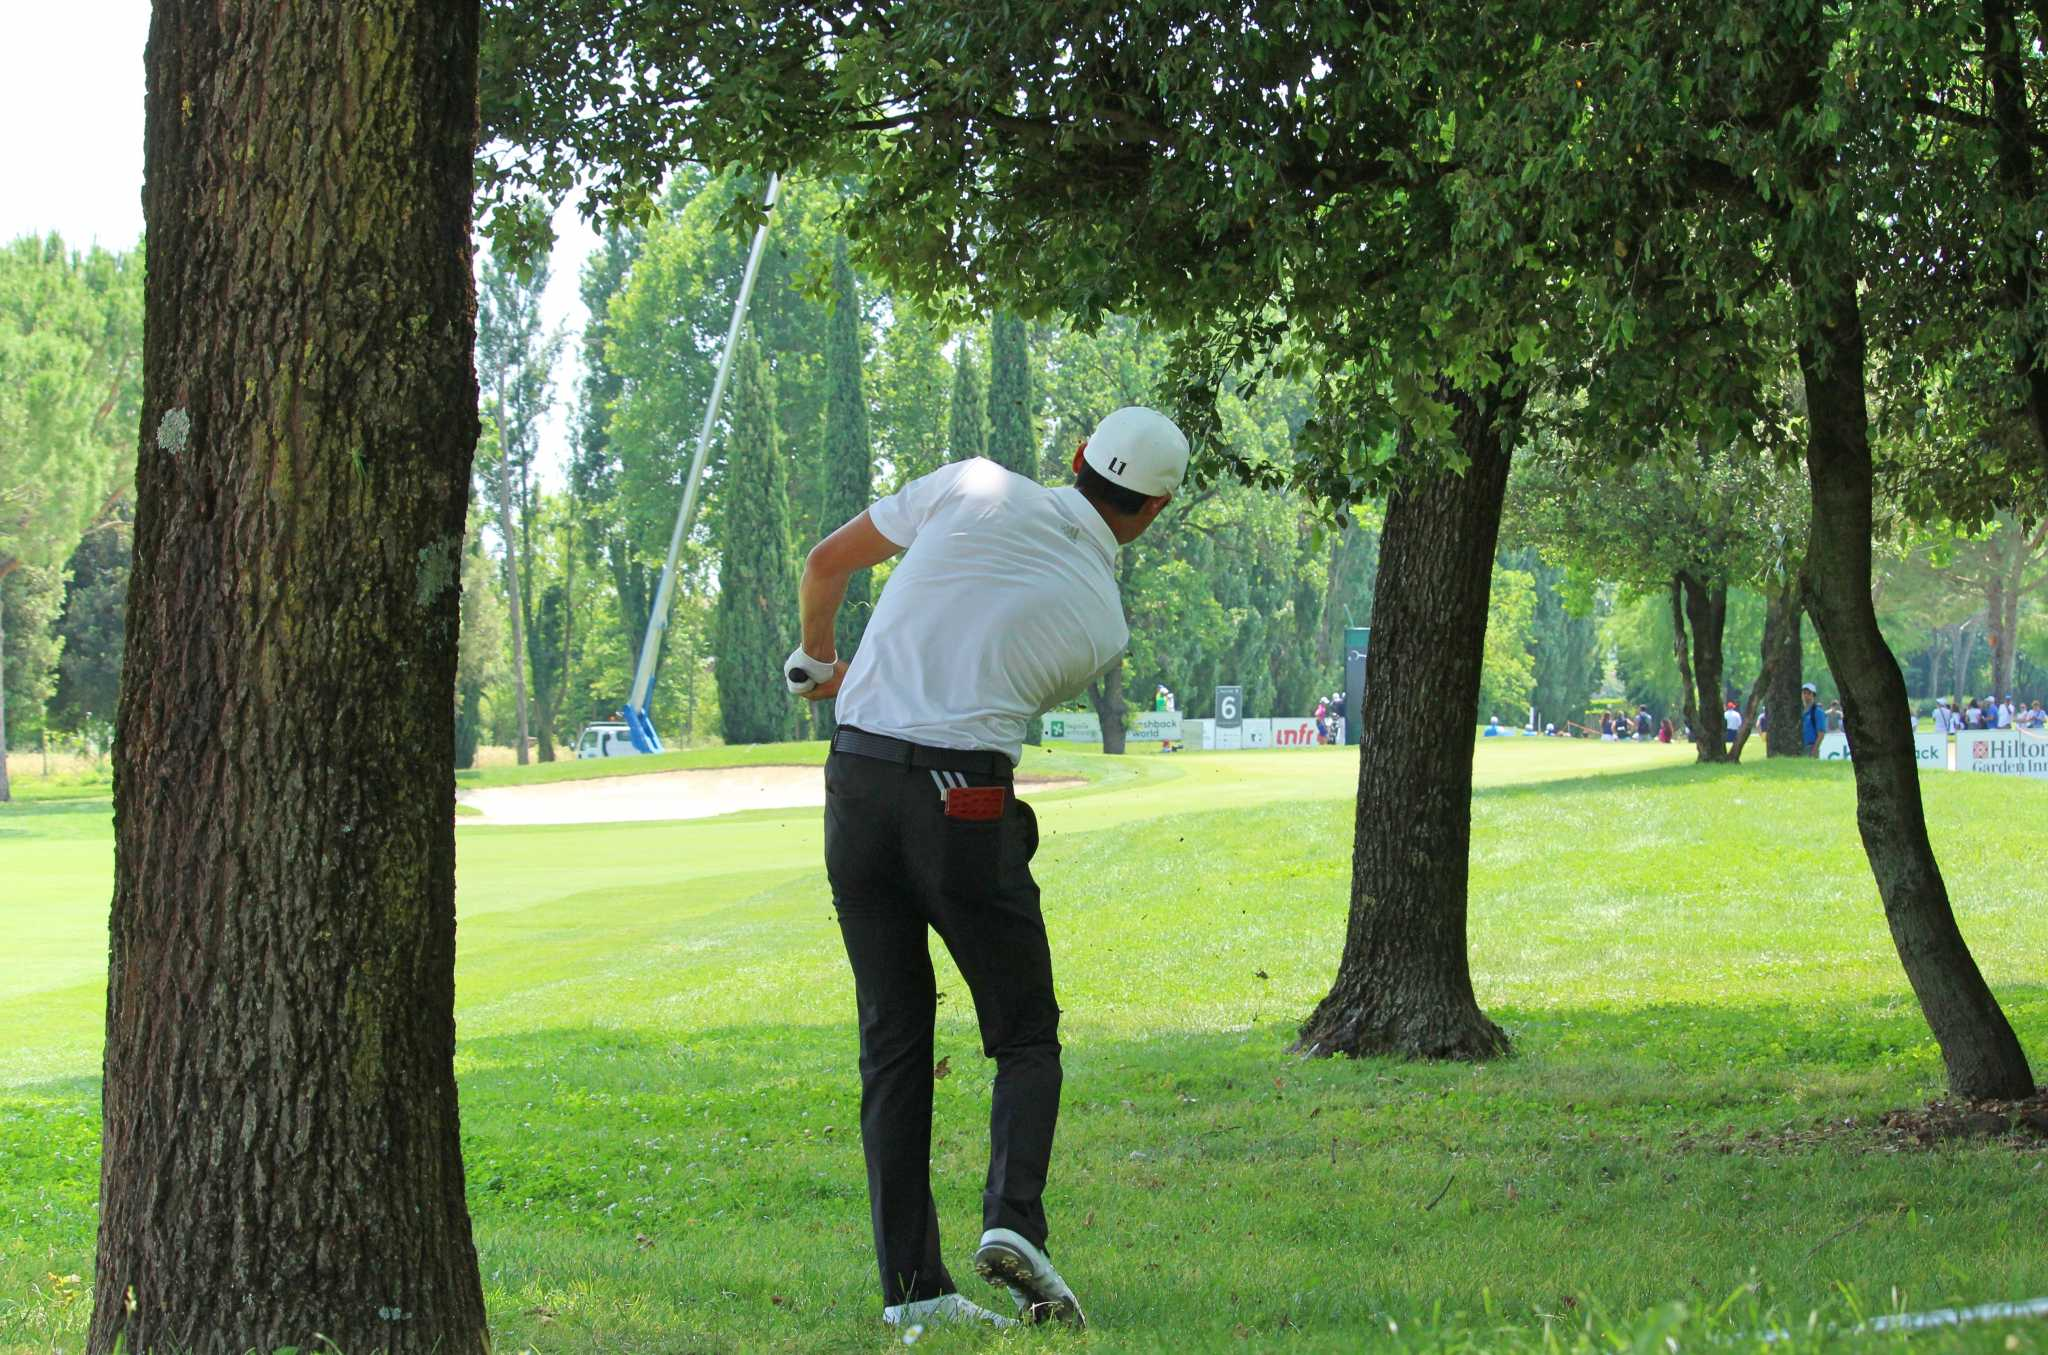 Haotong Li leads before the final round in Turkey